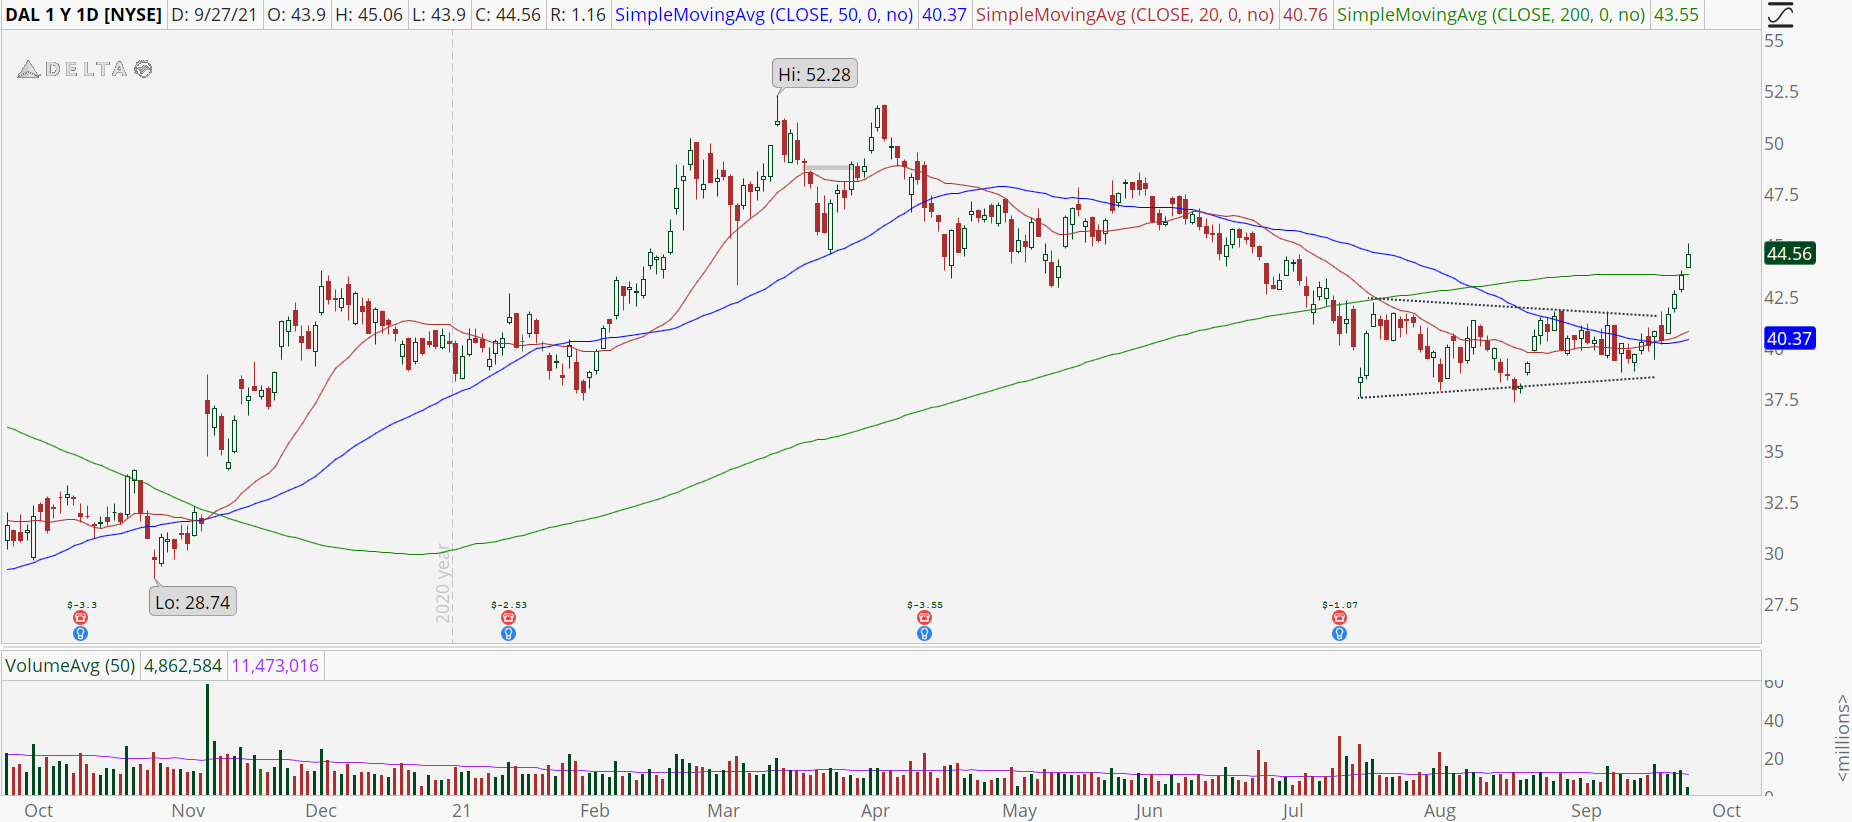 Delta Airlines (DAL) stock with bullish breakout